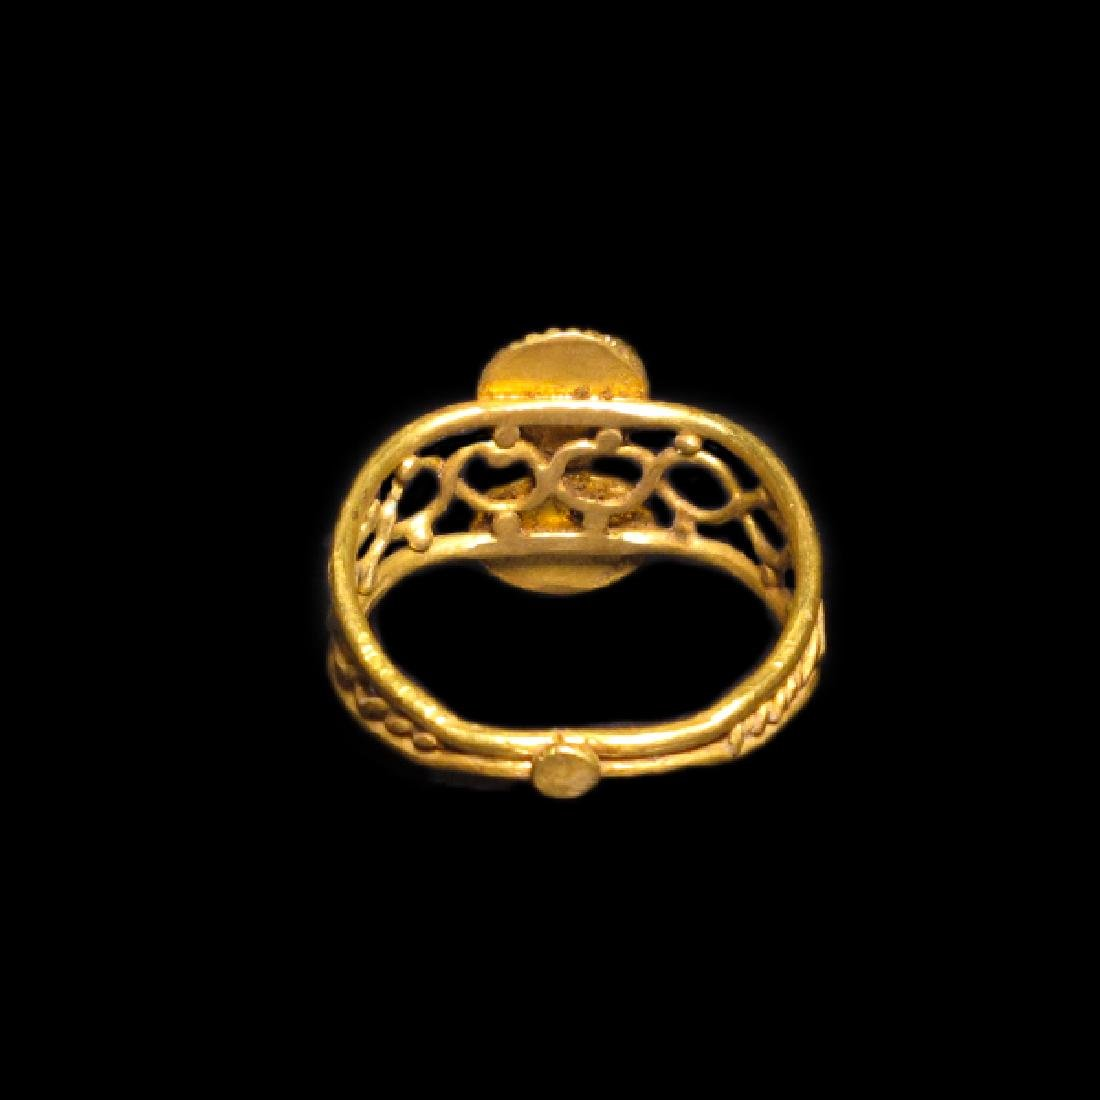 Roman Gold and Garnet Ring, c. 2nd-3rd Century A.D. - 4